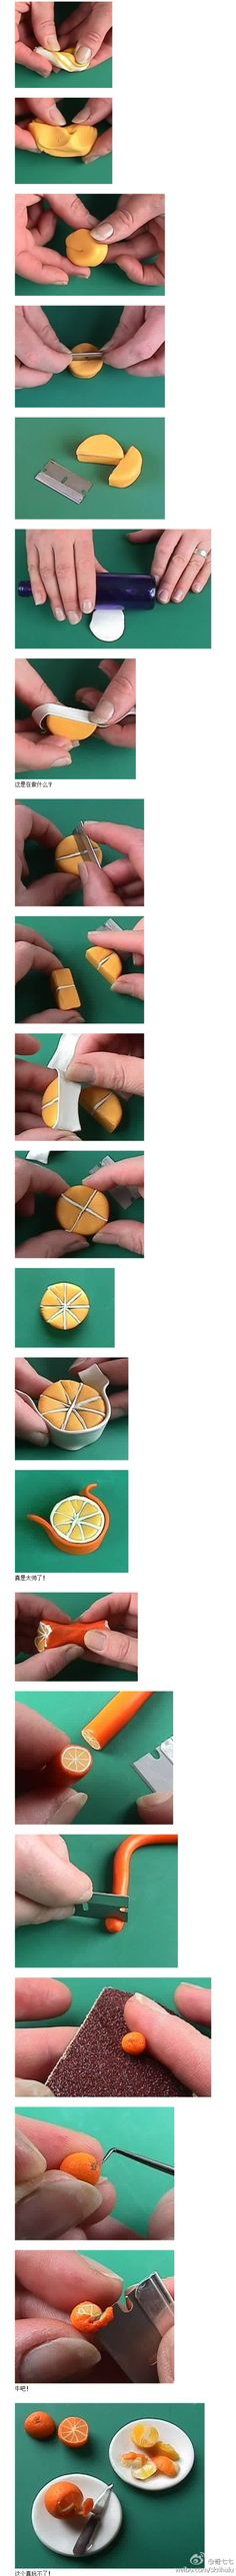 how to make mini oranges with orange peels from polymer clay